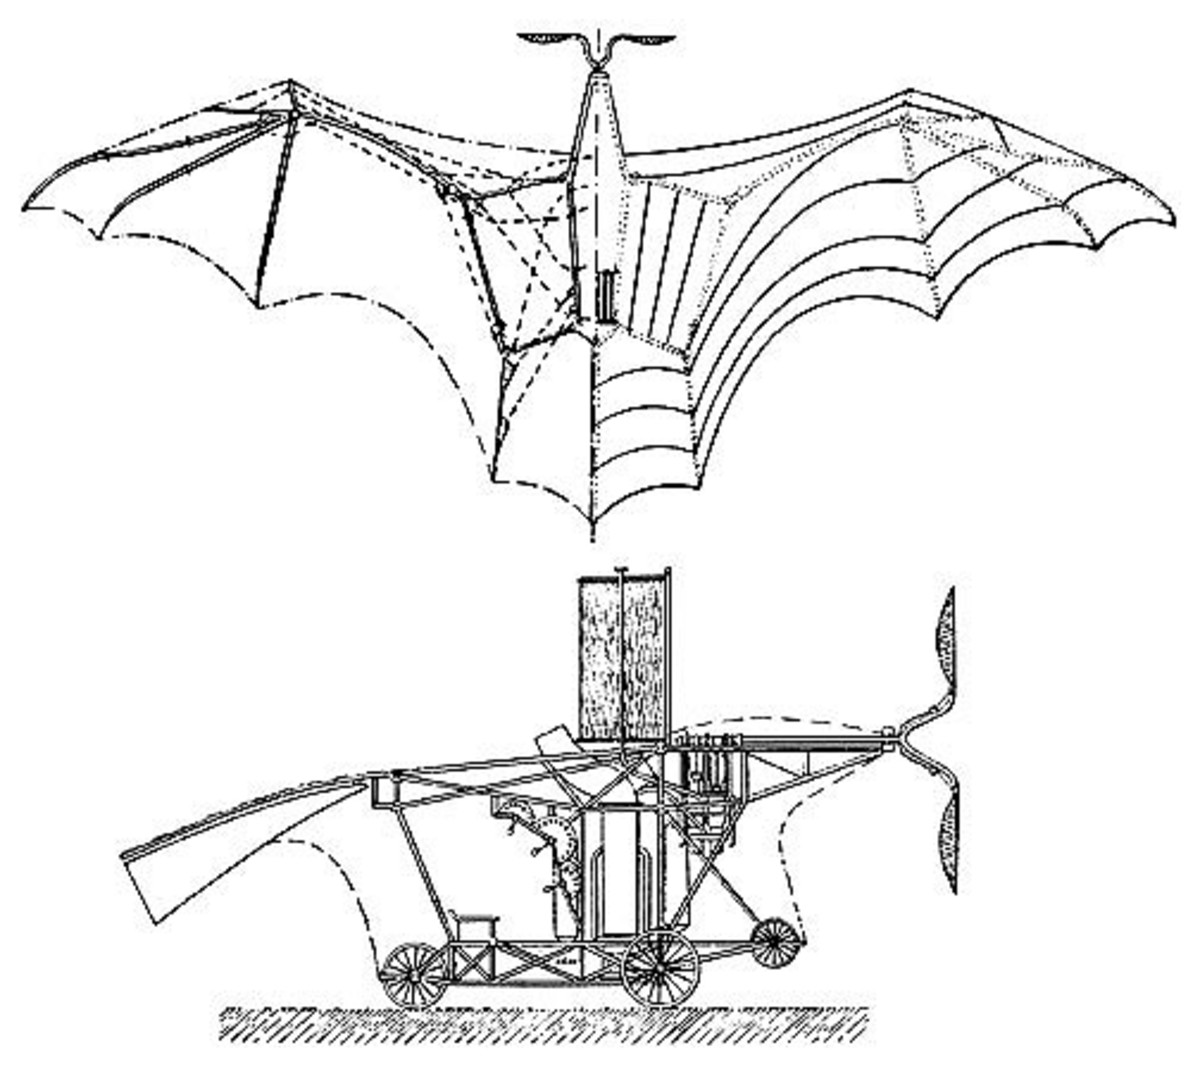 Patent Drawings of The Ader Eole